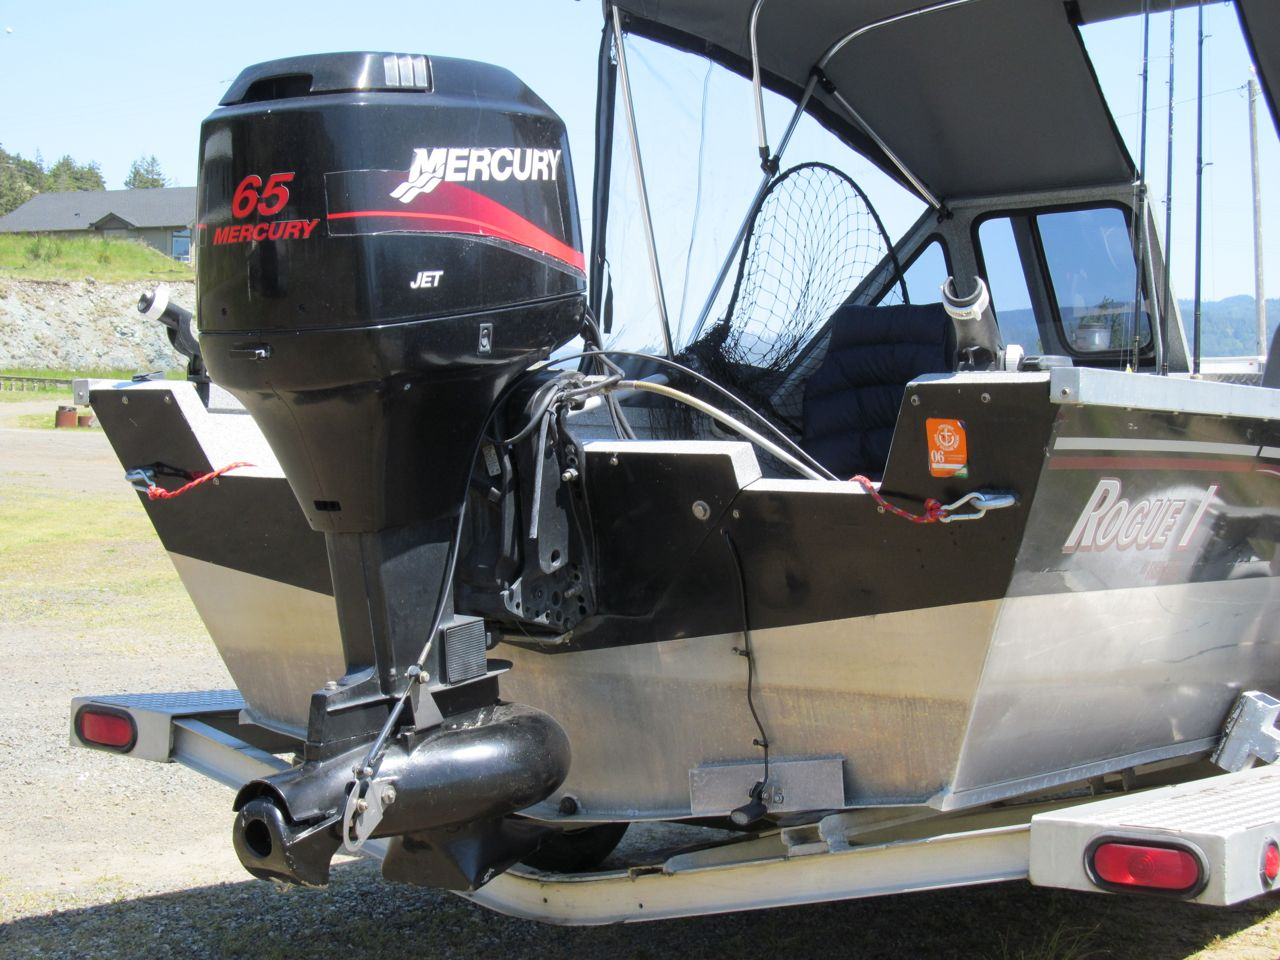 Outboard jet small craft advisor blog for Jon boat with jet motor